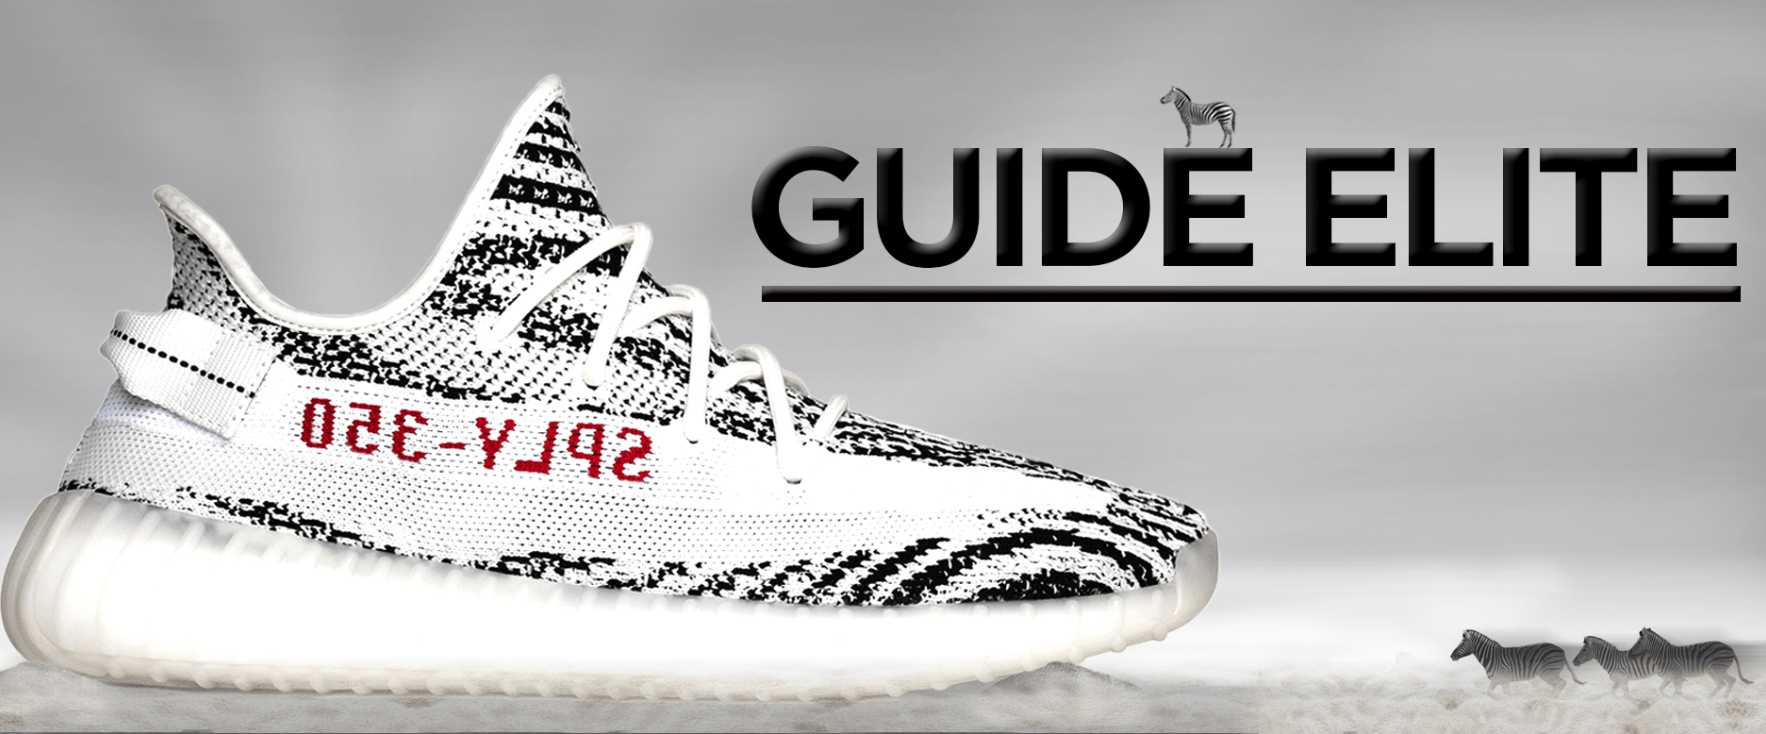 67bc661d3 6 Ways To Get Yeezy Zebra Re-release Sneakers